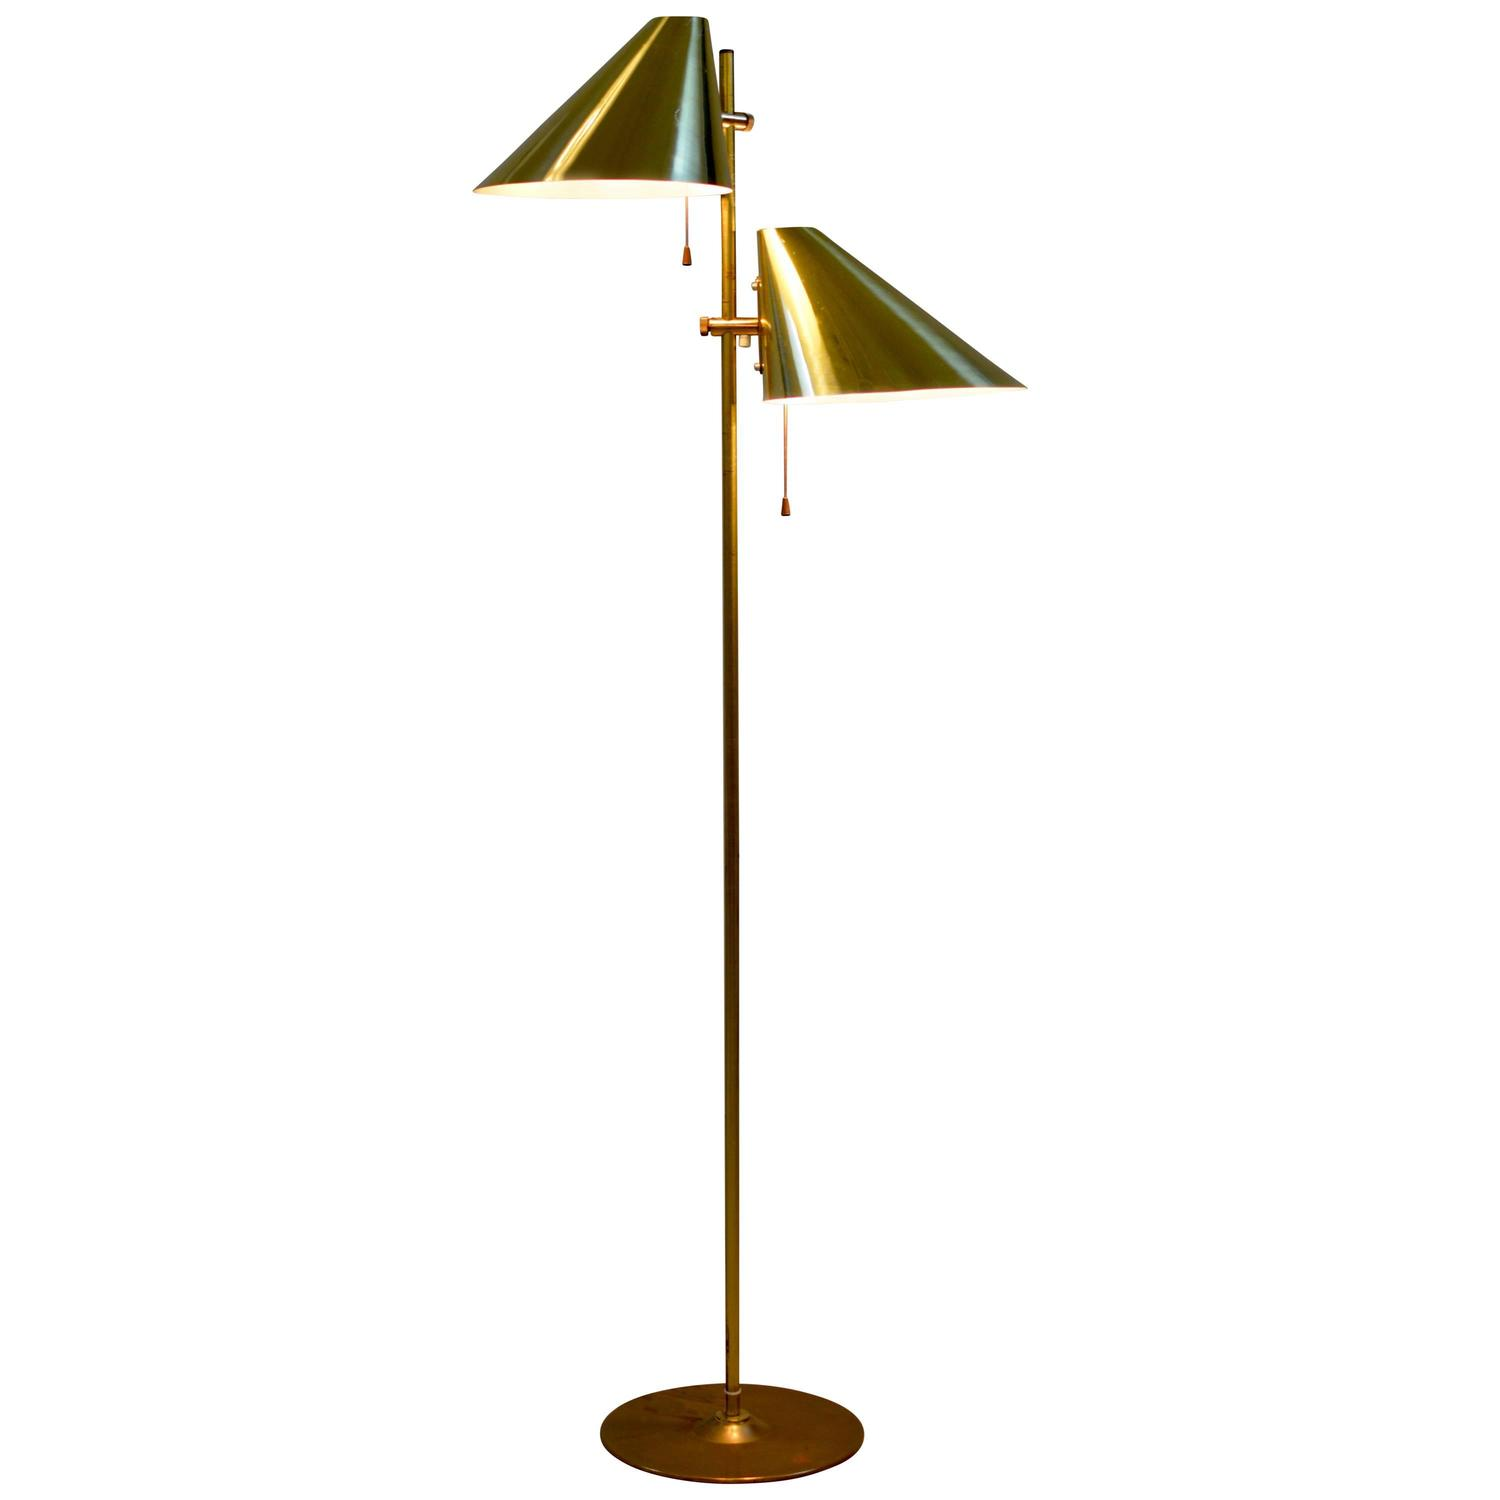 Hans agne jakobsson double shade floor lamp at 1stdibs audiocablefo